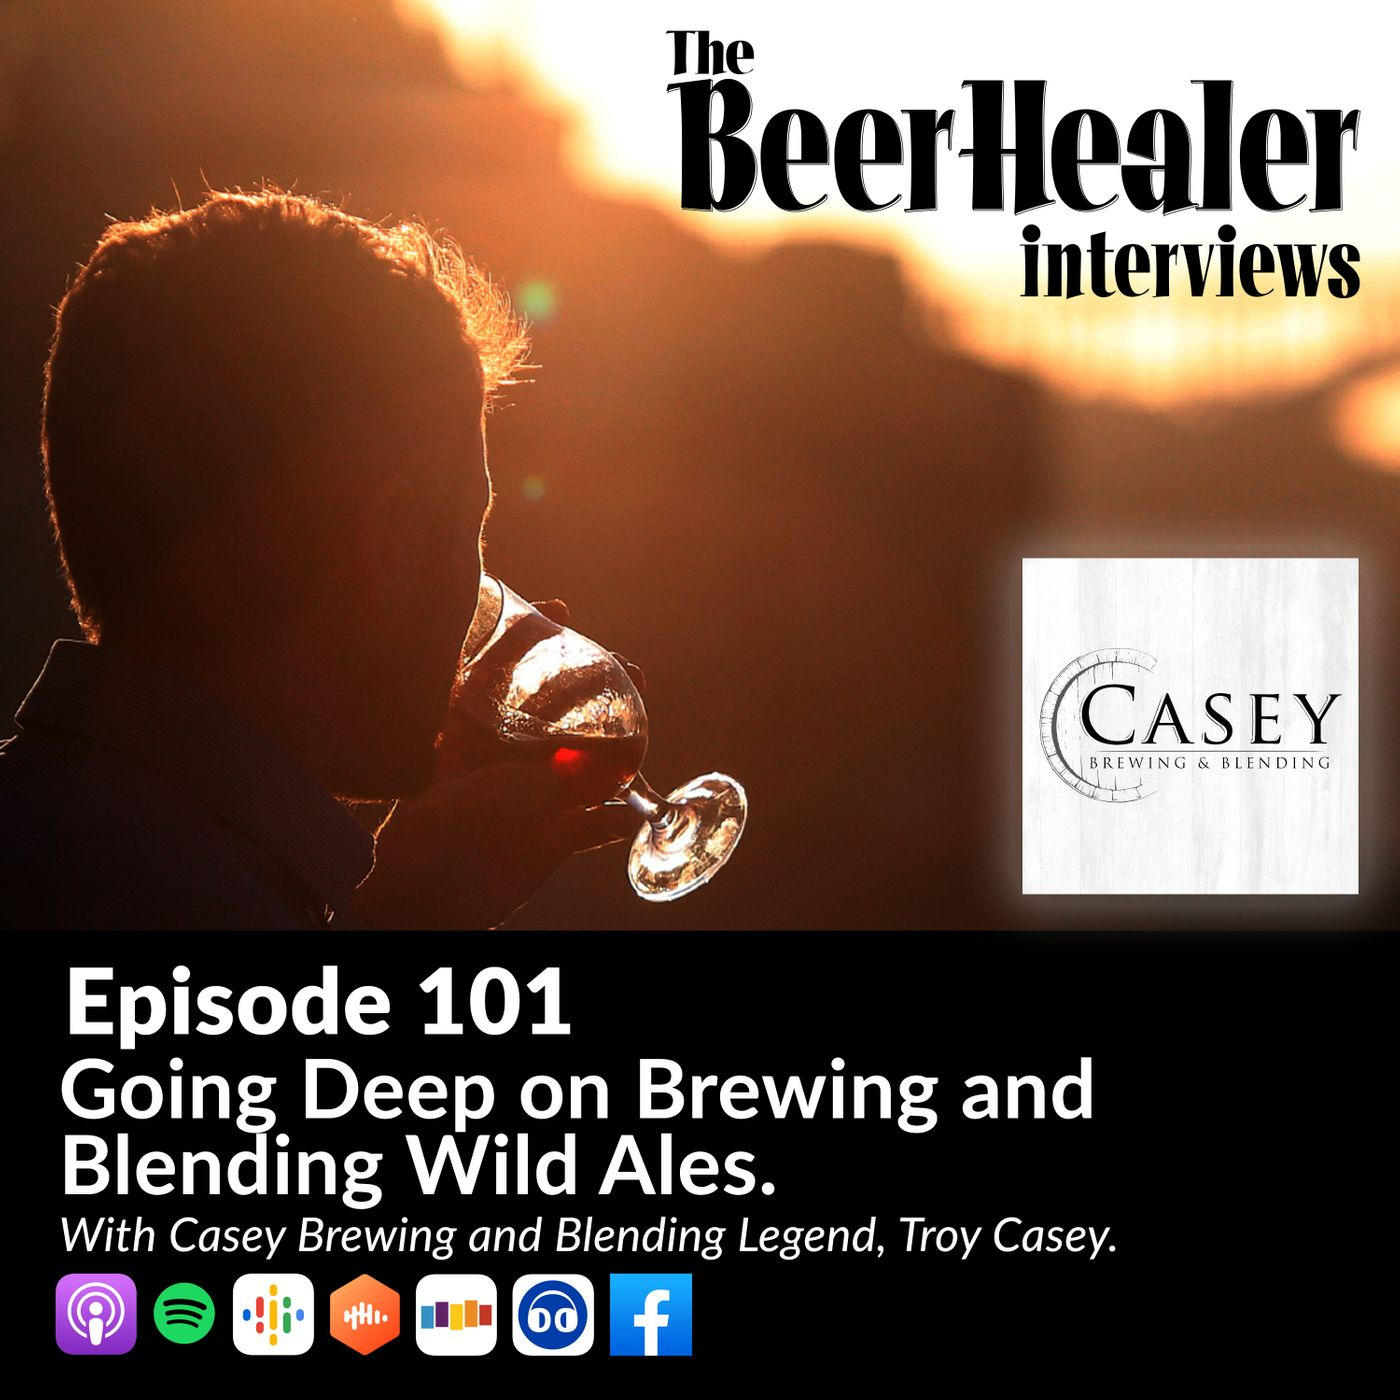 Ep. 101 - Going Deep on Brewing and Blending Wild Ales. With Casey Brewing and Blending Legend, Troy Casey.